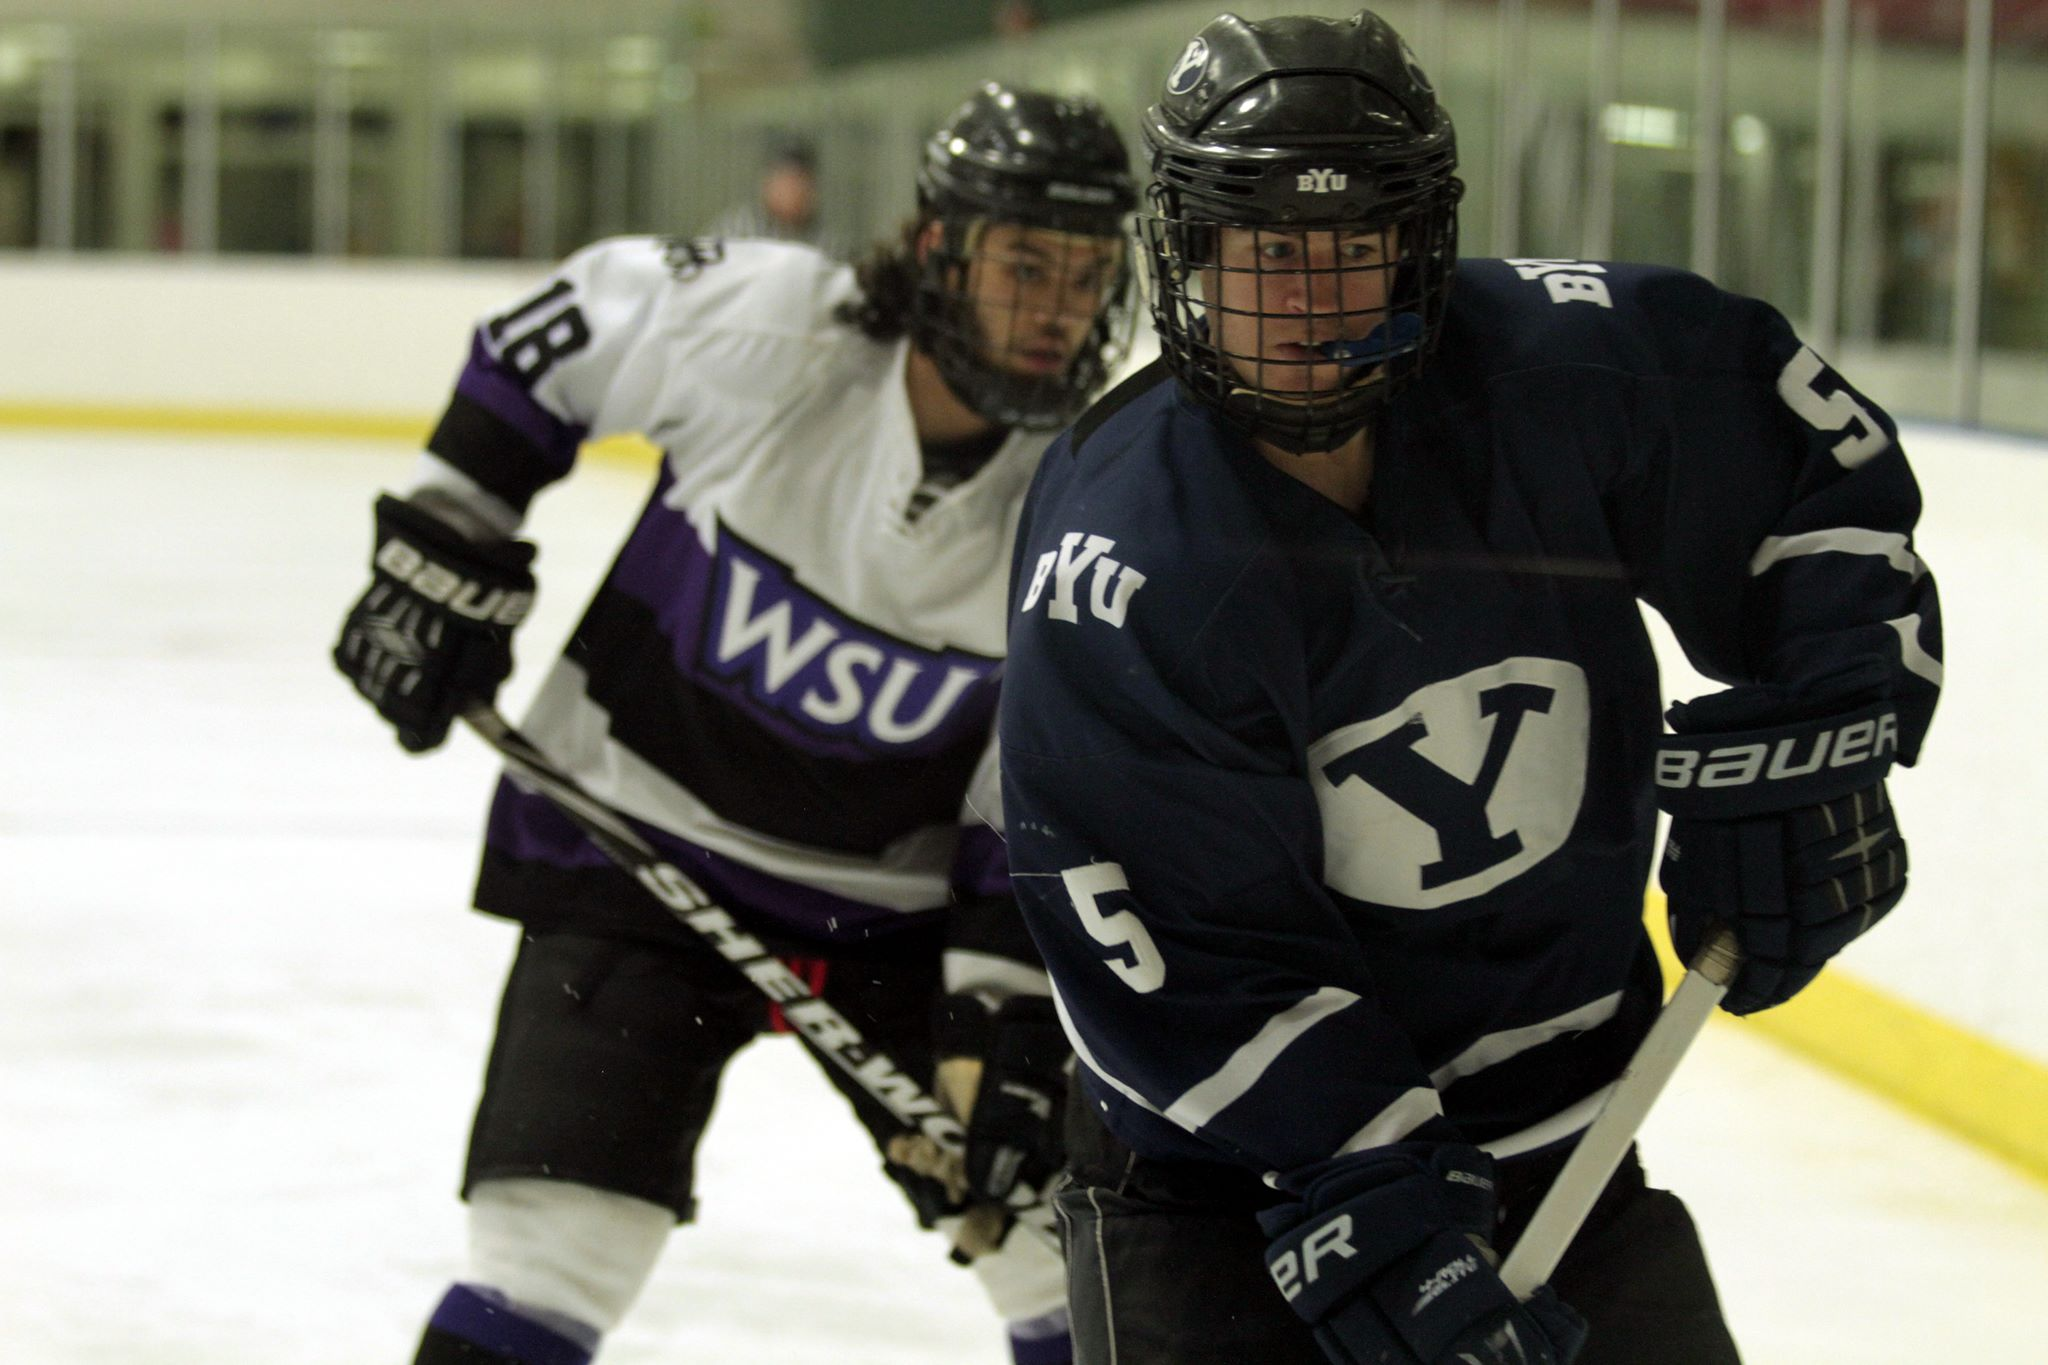 BYU's Josh Patrick (5) plays the puck against the boards as Weber State's Koda Coleman (18) closes in.